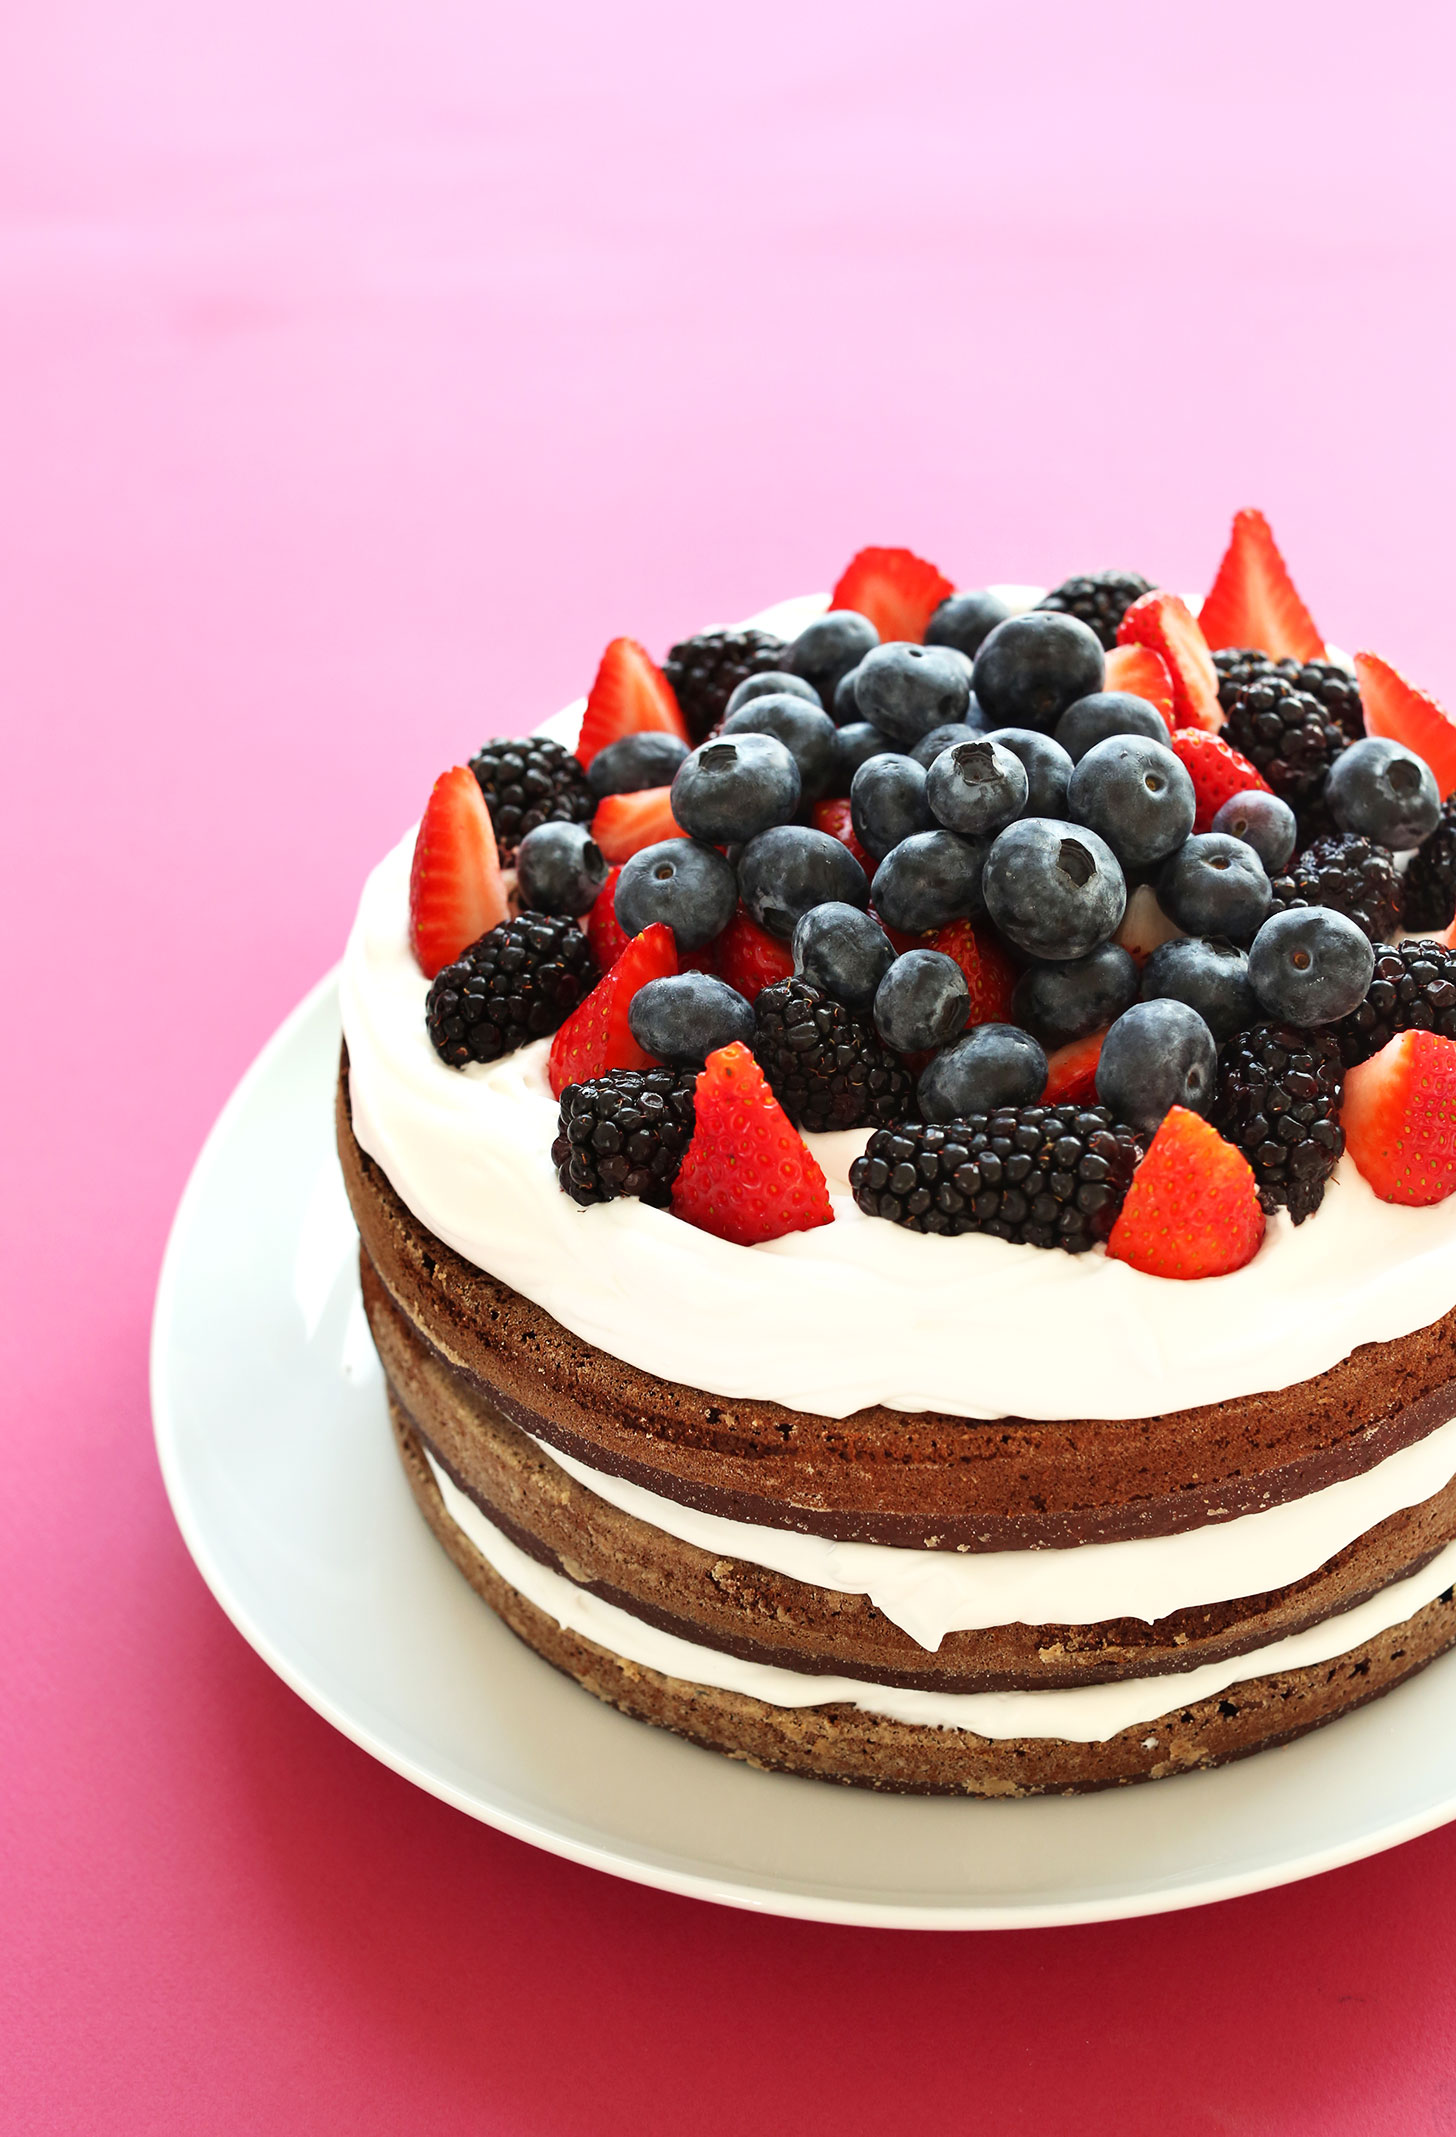 'AMAZING 1-Bowl Chocolate Cake with Coconut Whipped Cream with Berries! The perfect summer birthday cake | #vegan #glutenfree #cake #glutenfree #chocolate #dessert #minimalistbaker' from the web at 'https://minimalistbaker.com/wp-content/uploads/2015/07/AMAZING-1-Bowl-Chocolate-Cake-with-Coconut-Whipped-Cream-with-Berries-The-perfect-summer-birthday-cake-vegan-glutenfree-cake-glutenfree-chocolate-dessert.jpg'